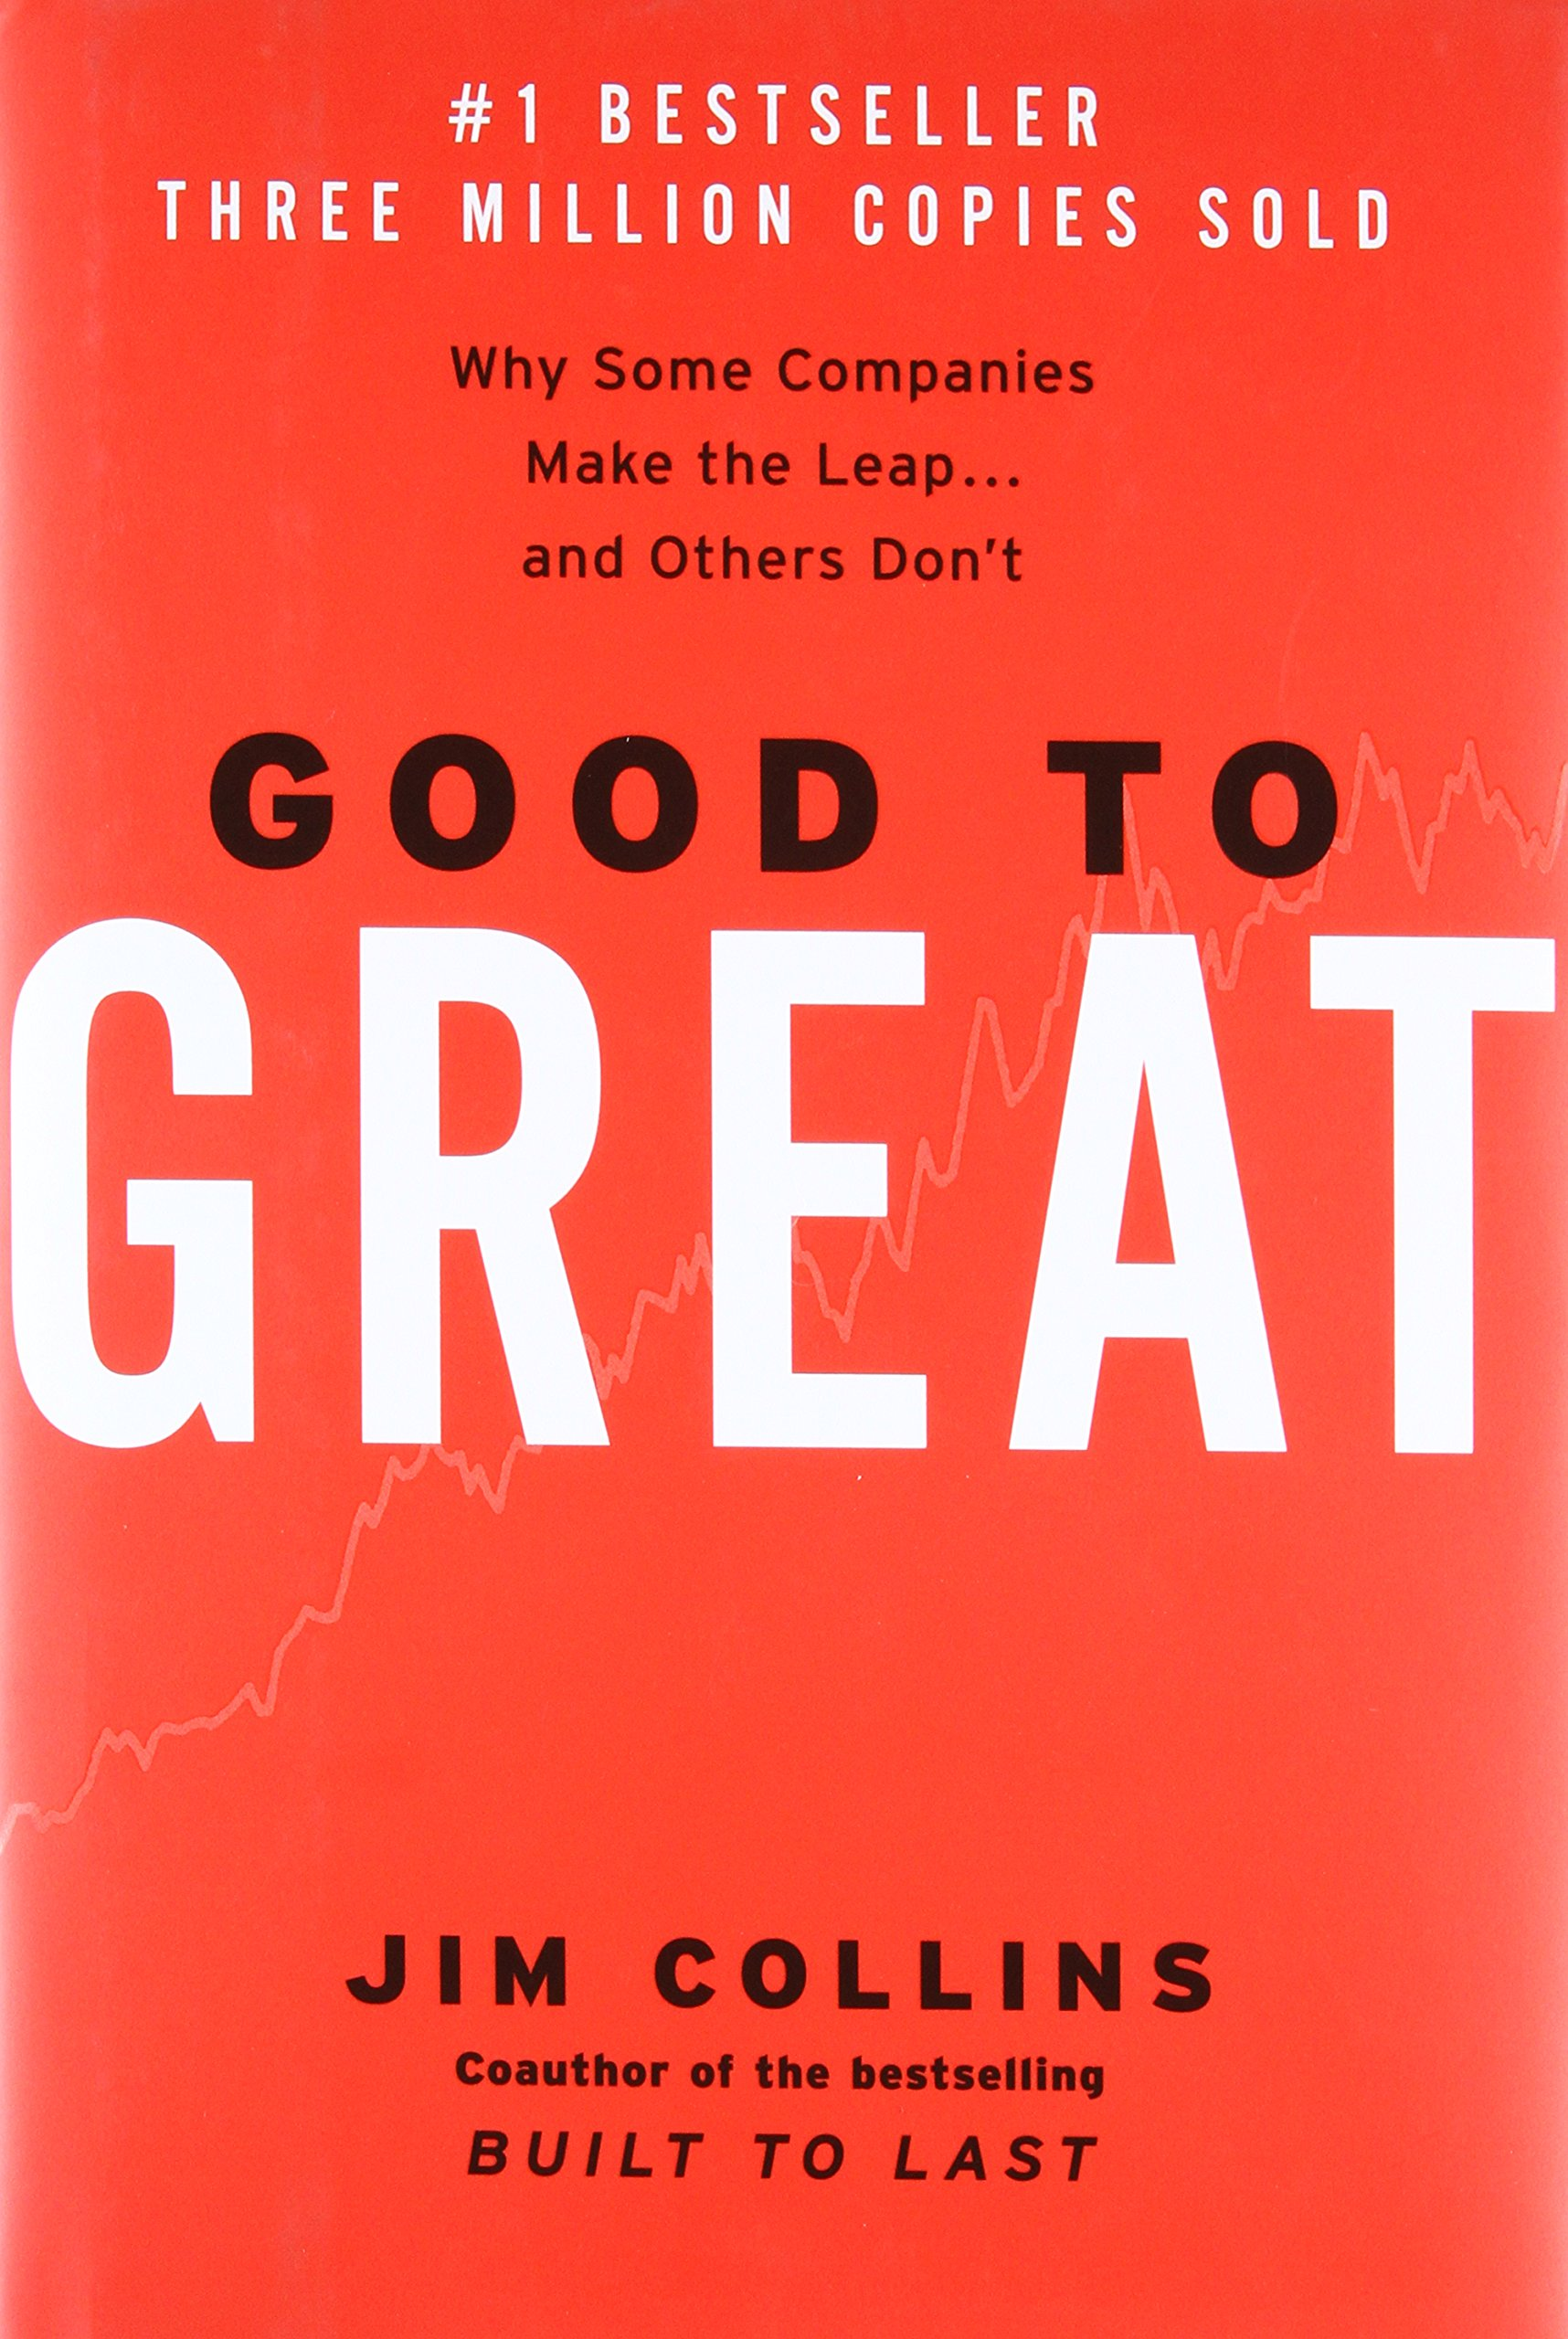 Image result for good to great why some companies jim collins""